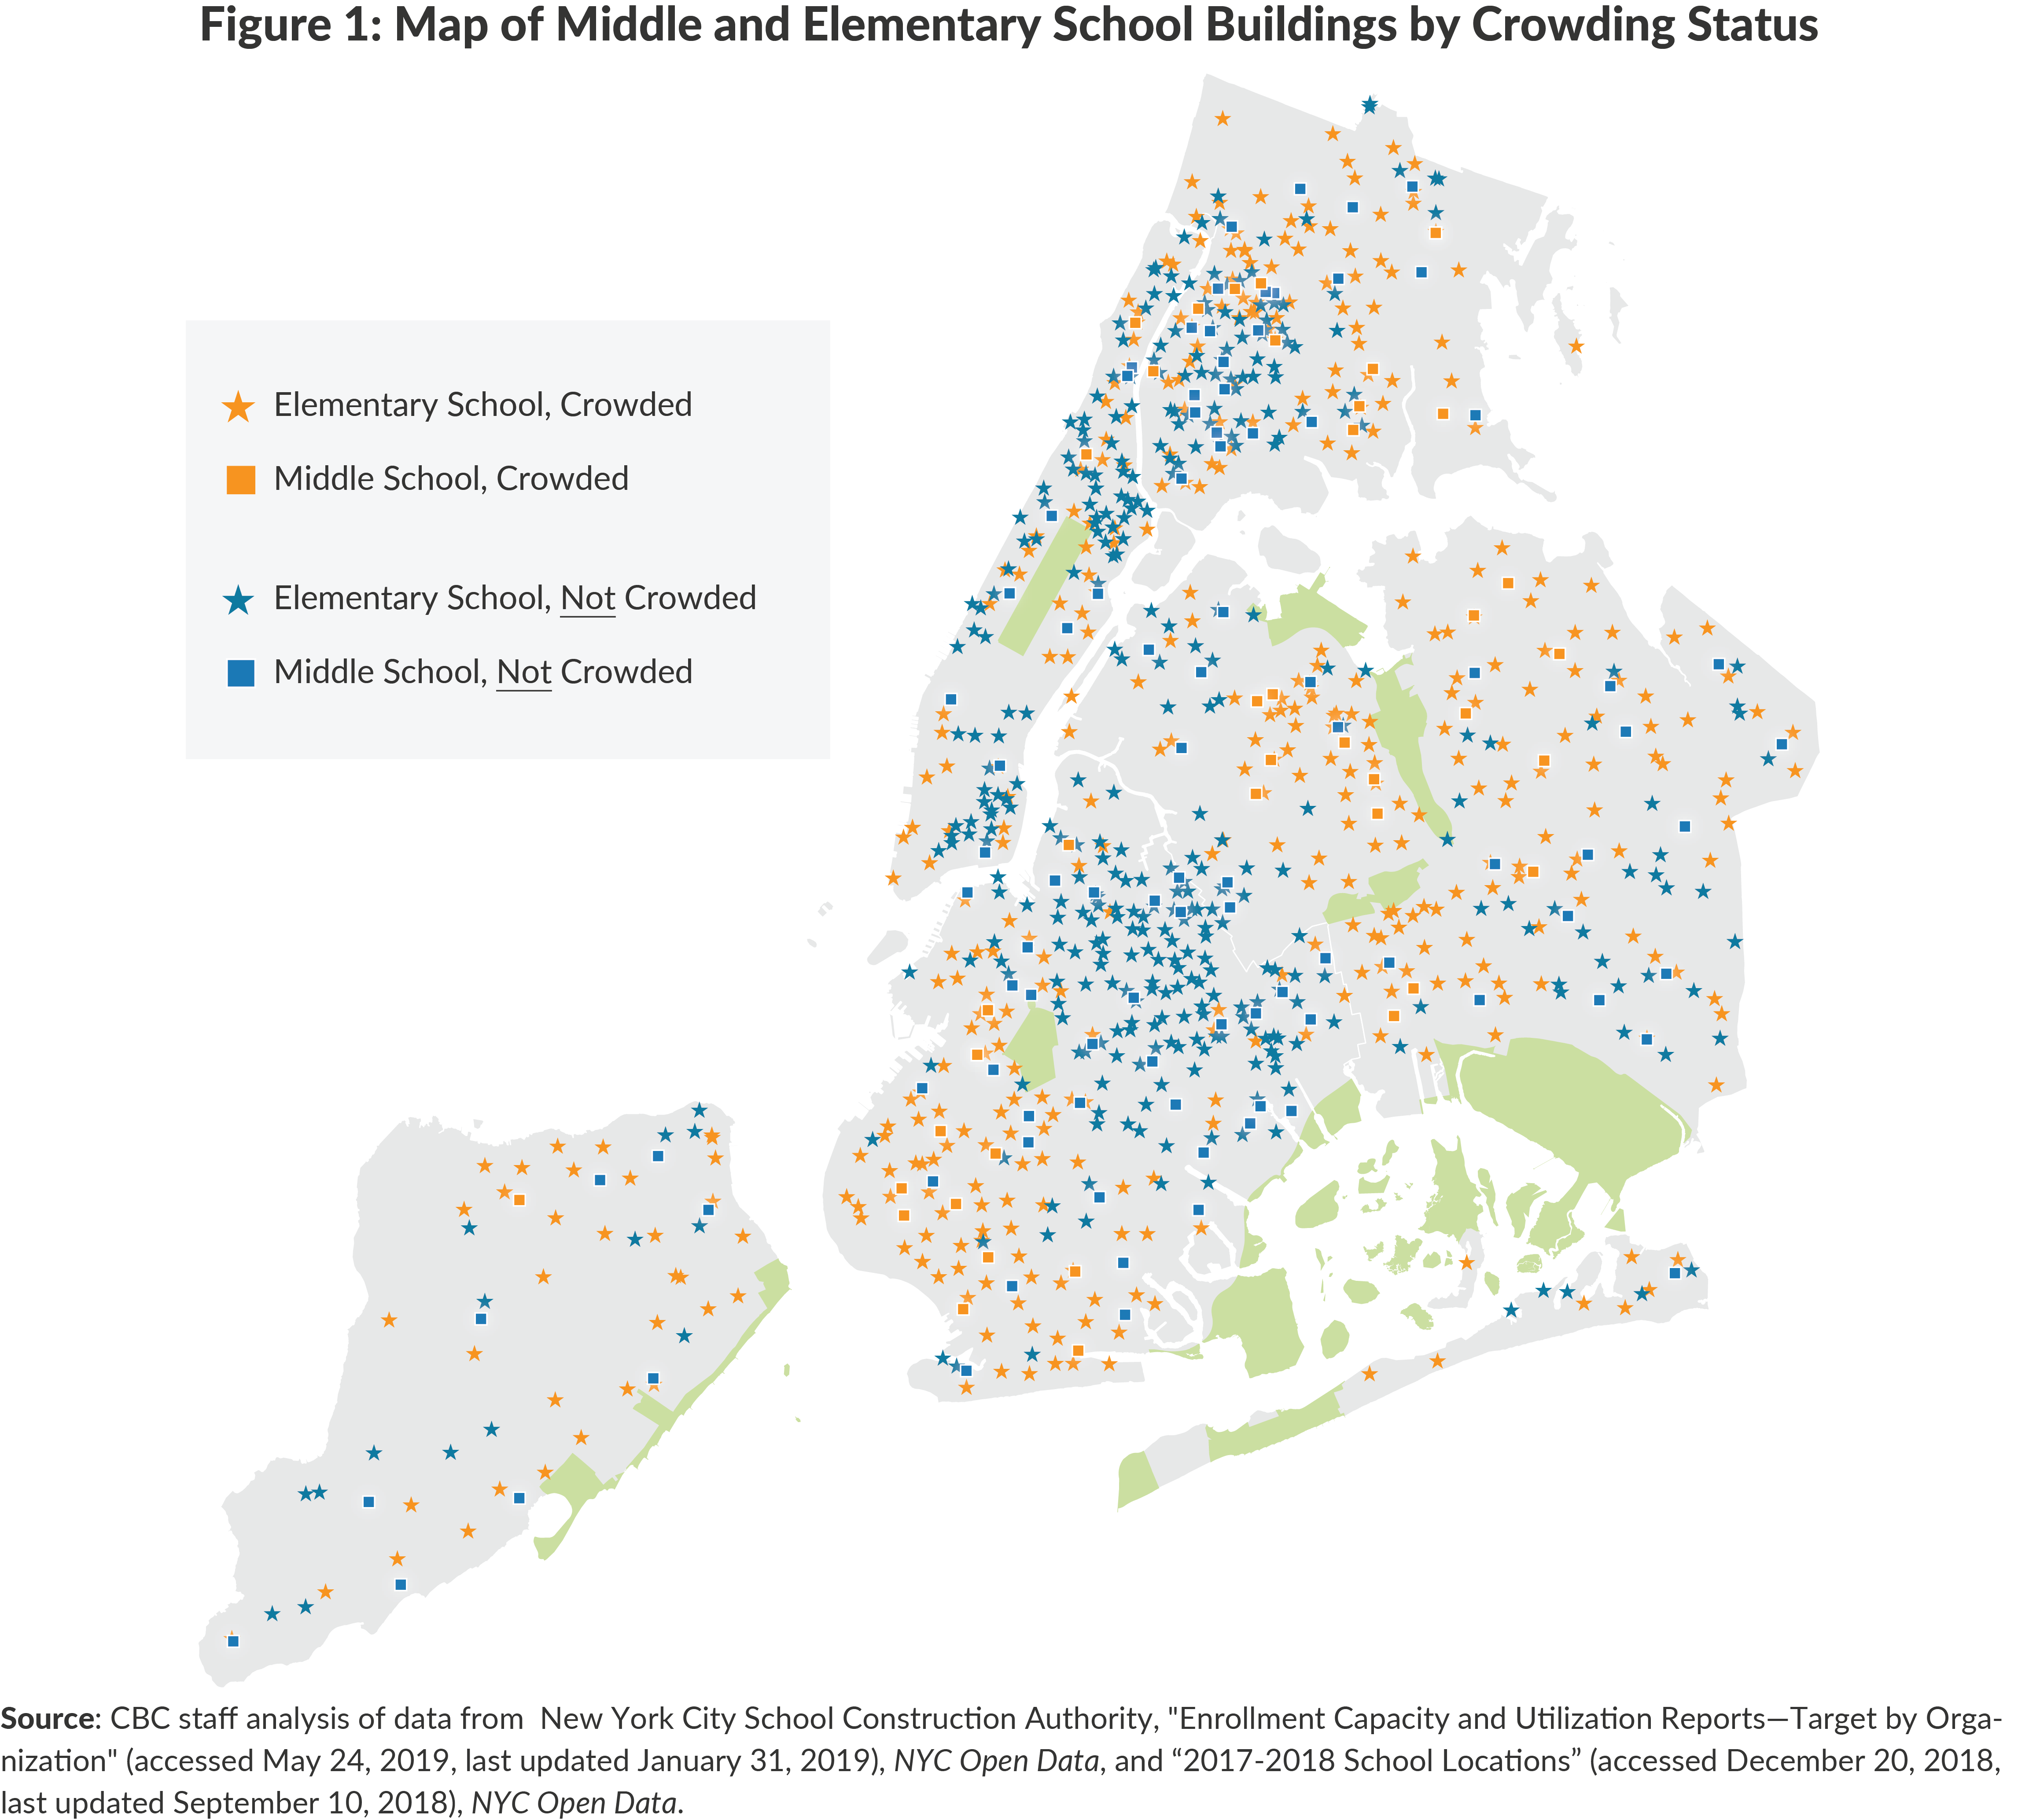 Figure 1: Map of Middle and Elementary School Buildings by Crowding Status